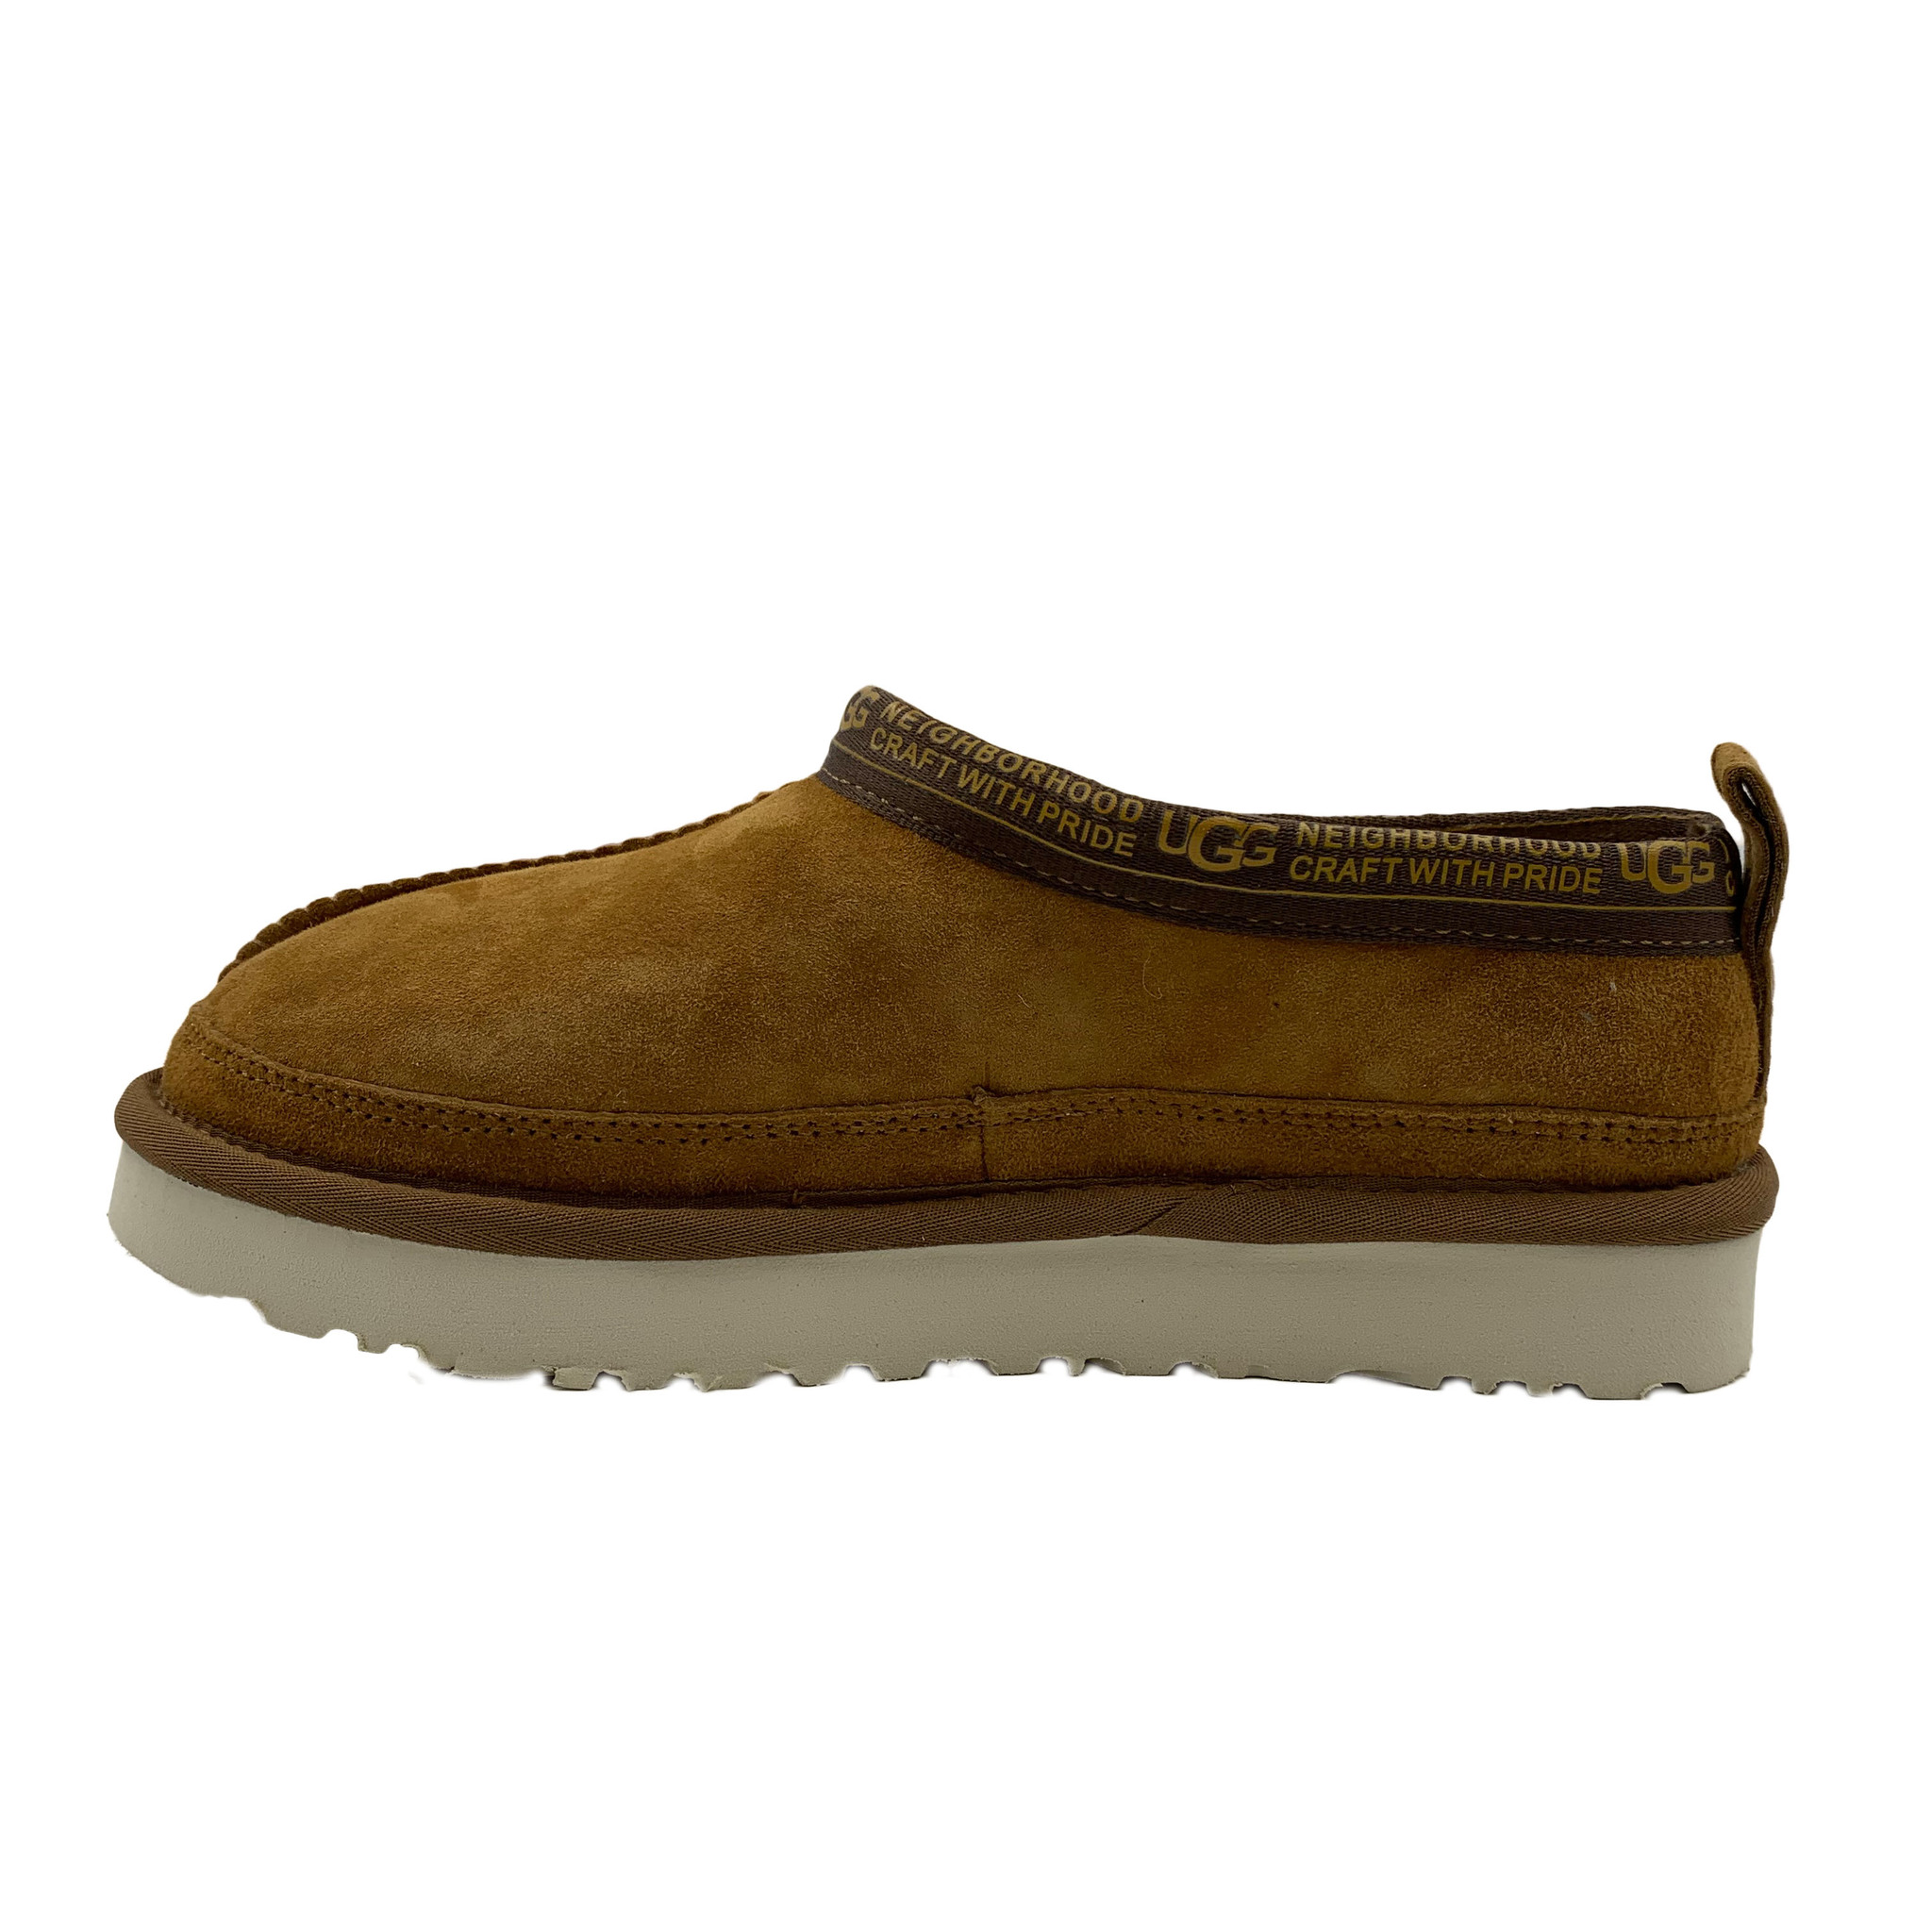 UGG MEN'S X NEIGHBORHOOD TASMAN CHESTNUT